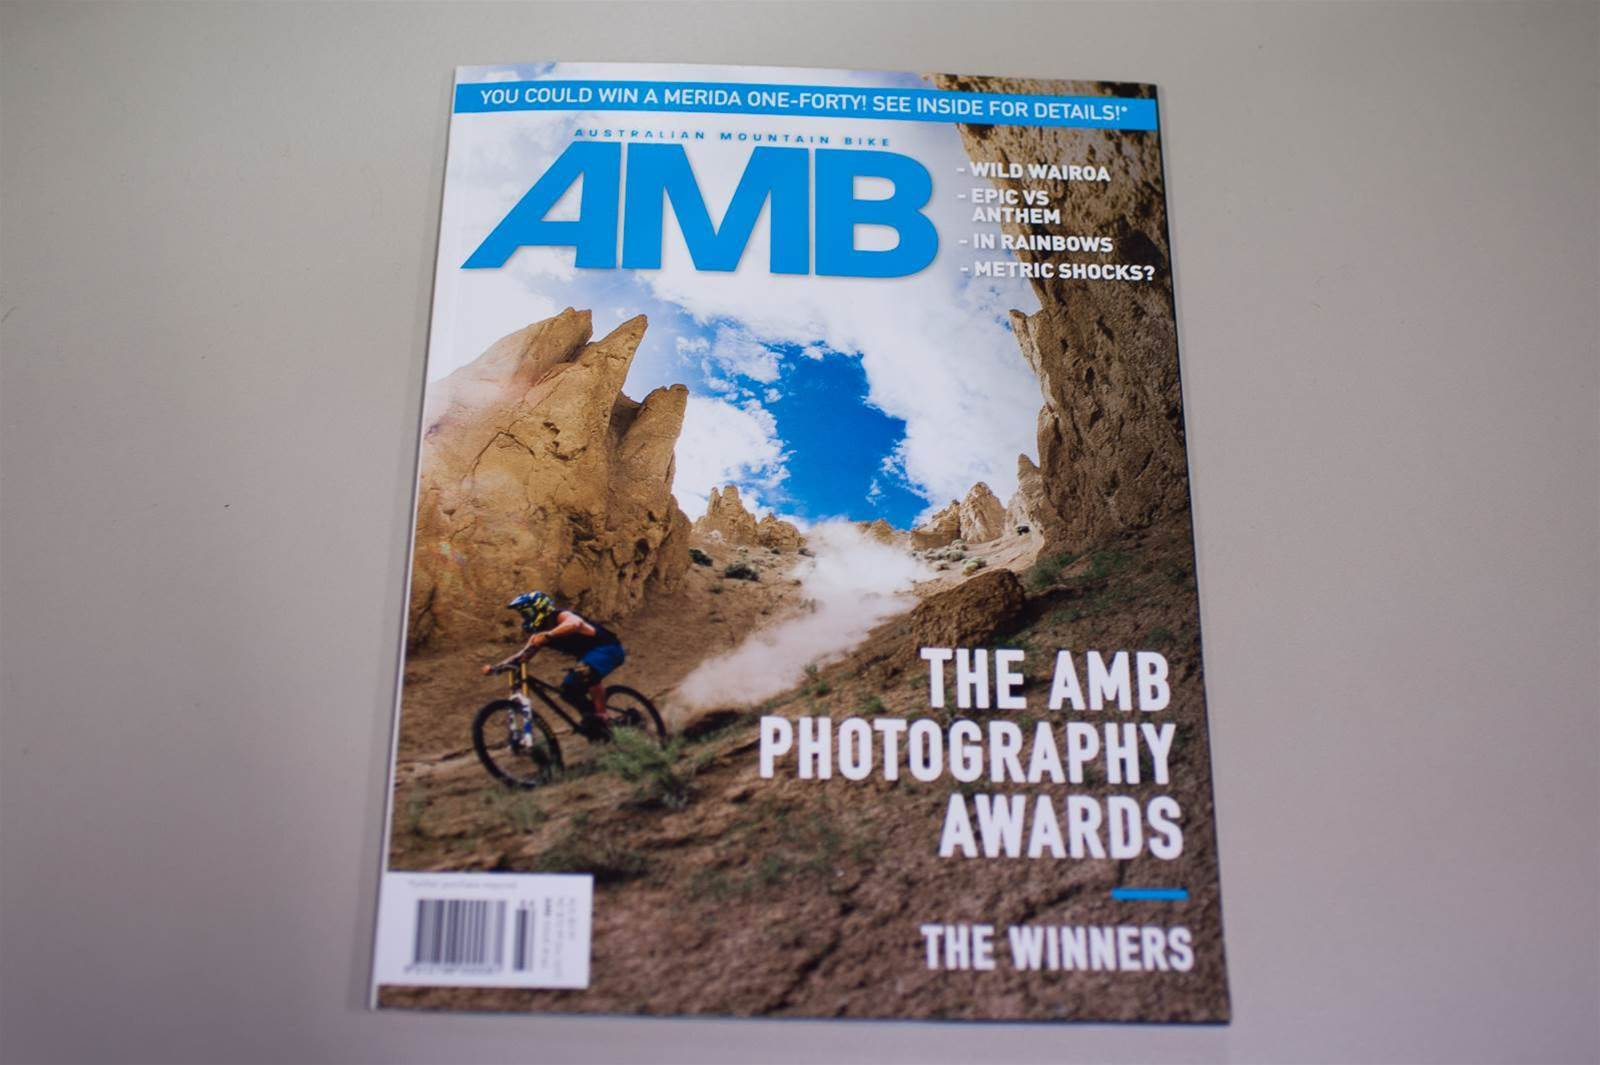 Take a look inside AMB Issue #164